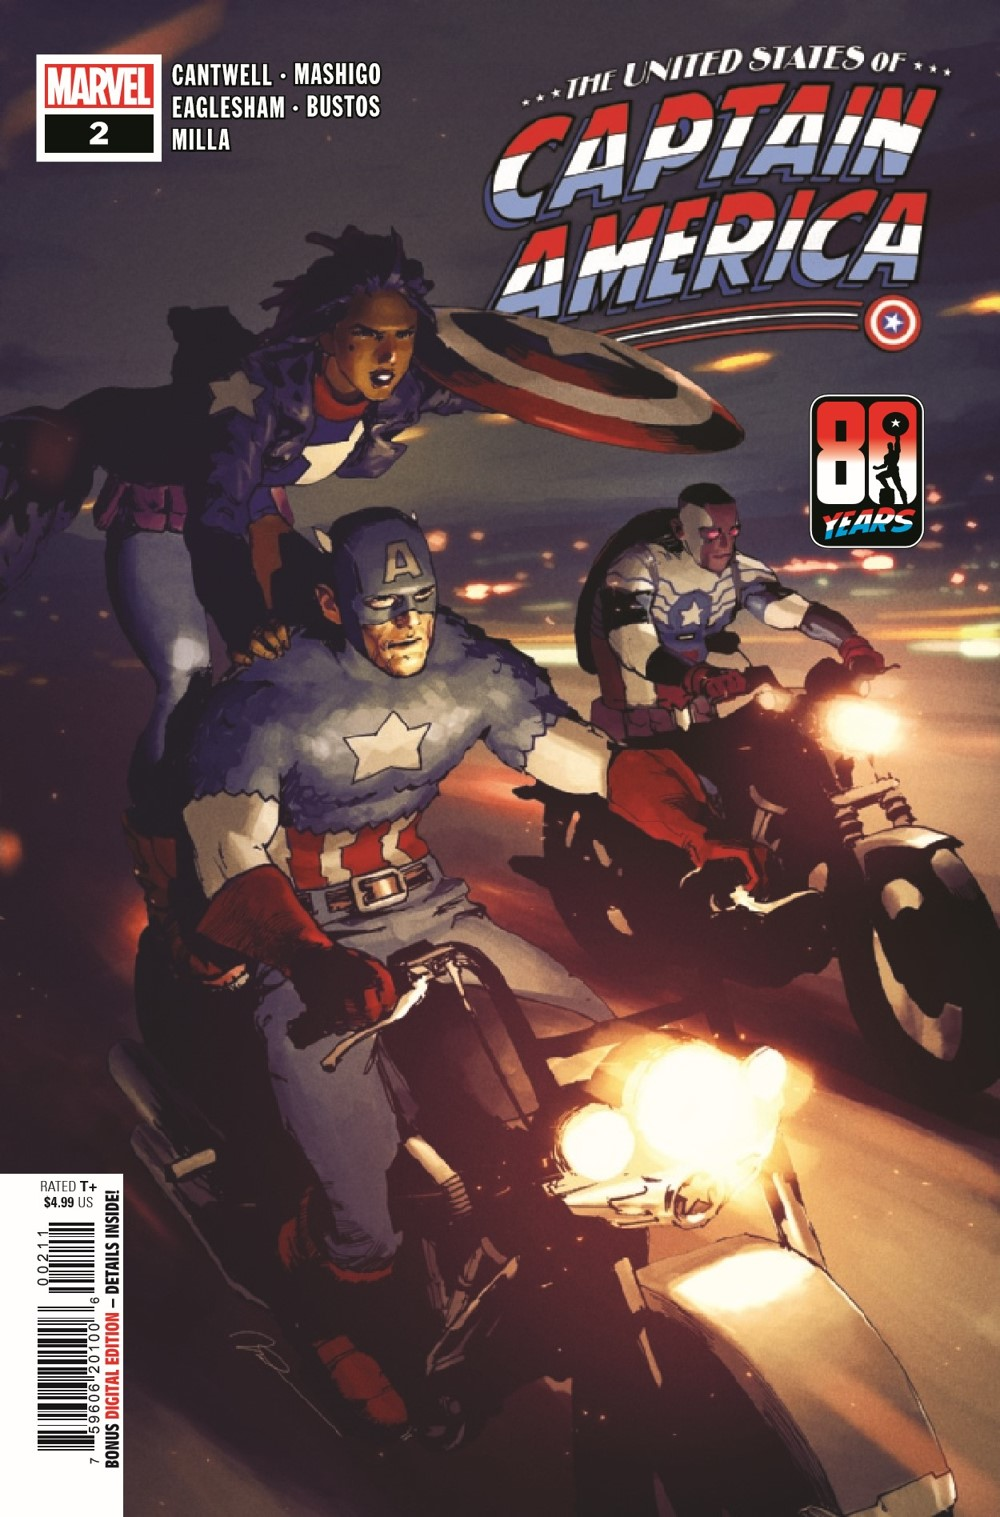 USCAPA2021002_Preview-1 ComicList Previews: UNITED STATES OF CAPTAIN AMERICA #2 (OF 5)